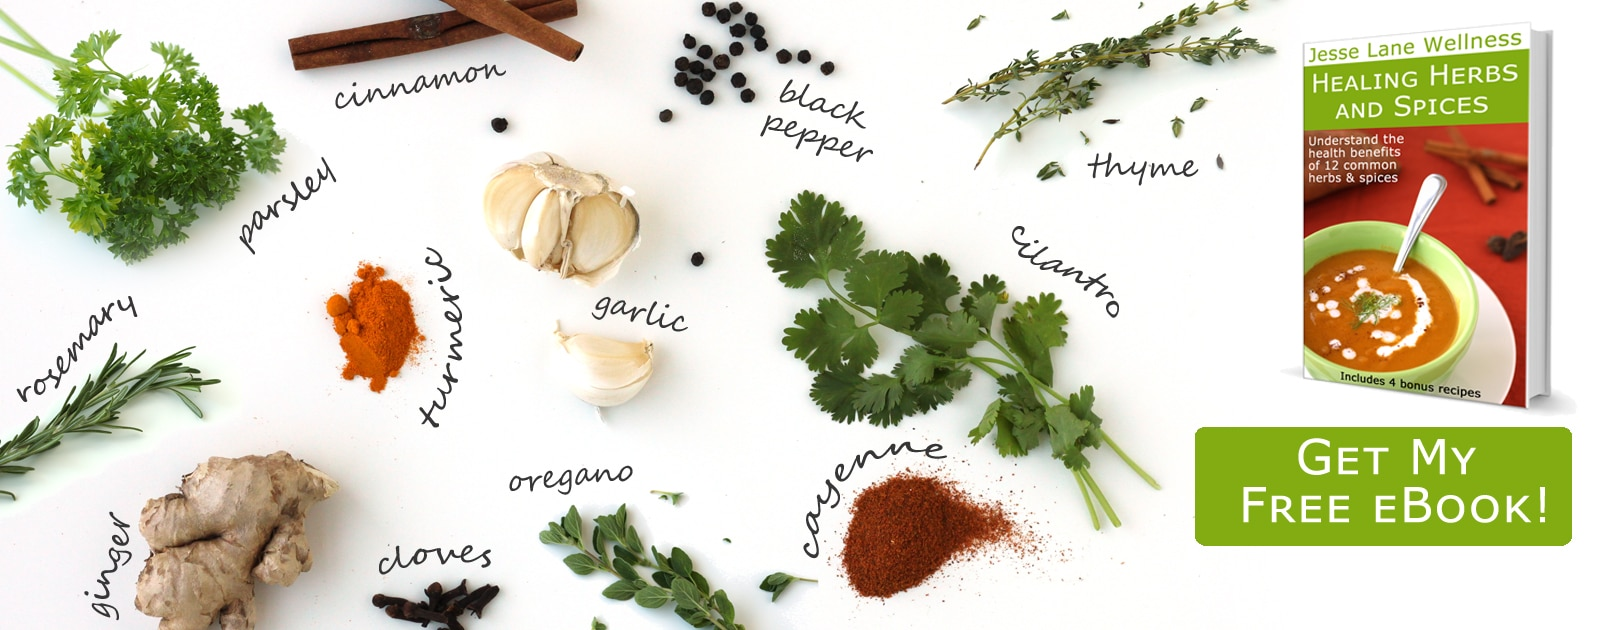 healing-herbs-and-spices-slider